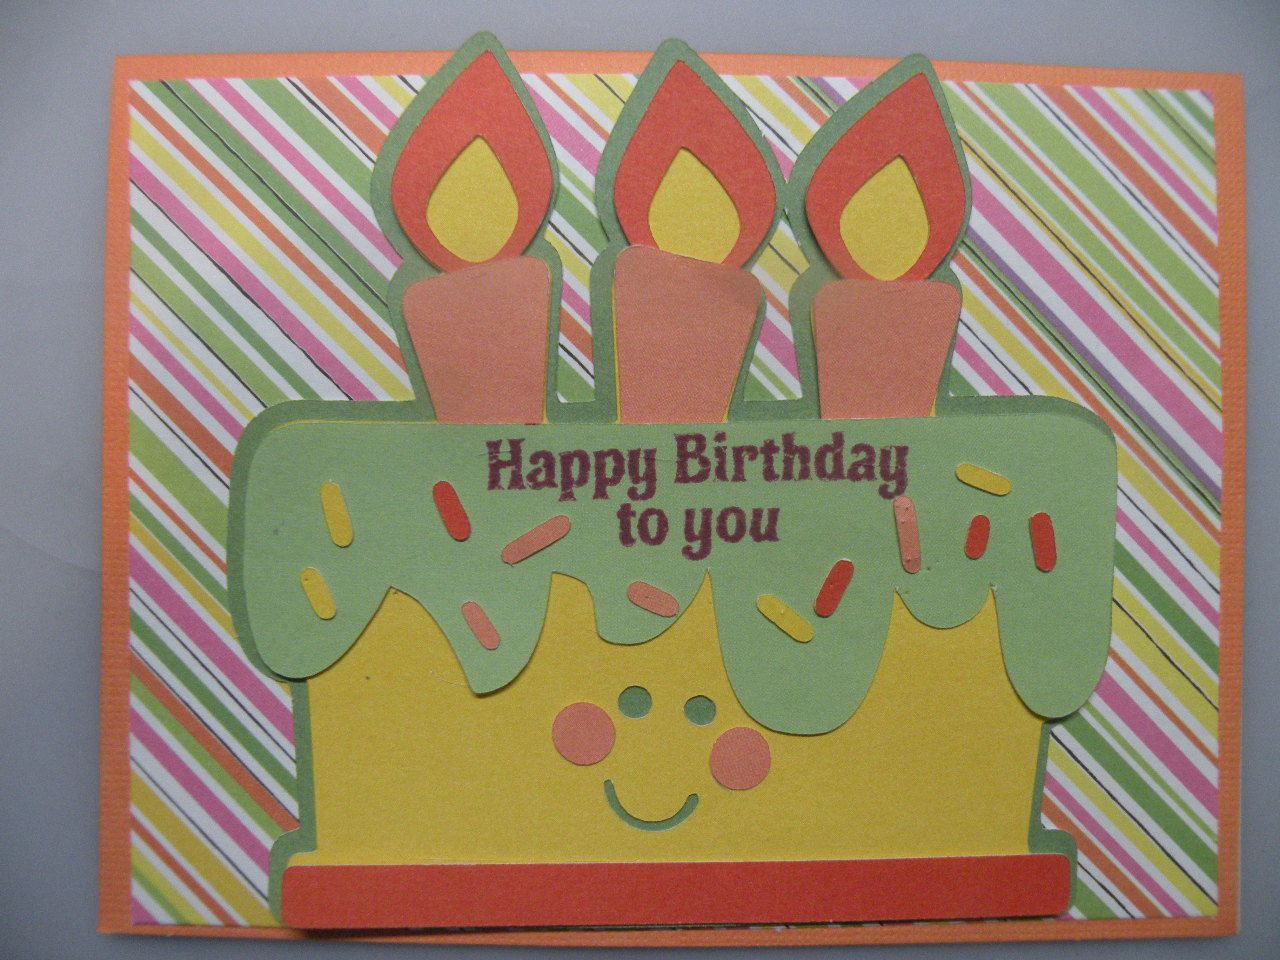 Easy to make homemade birthday card with a cricut homemade easy to make homemade birthday card with a cricut m4hsunfo Gallery